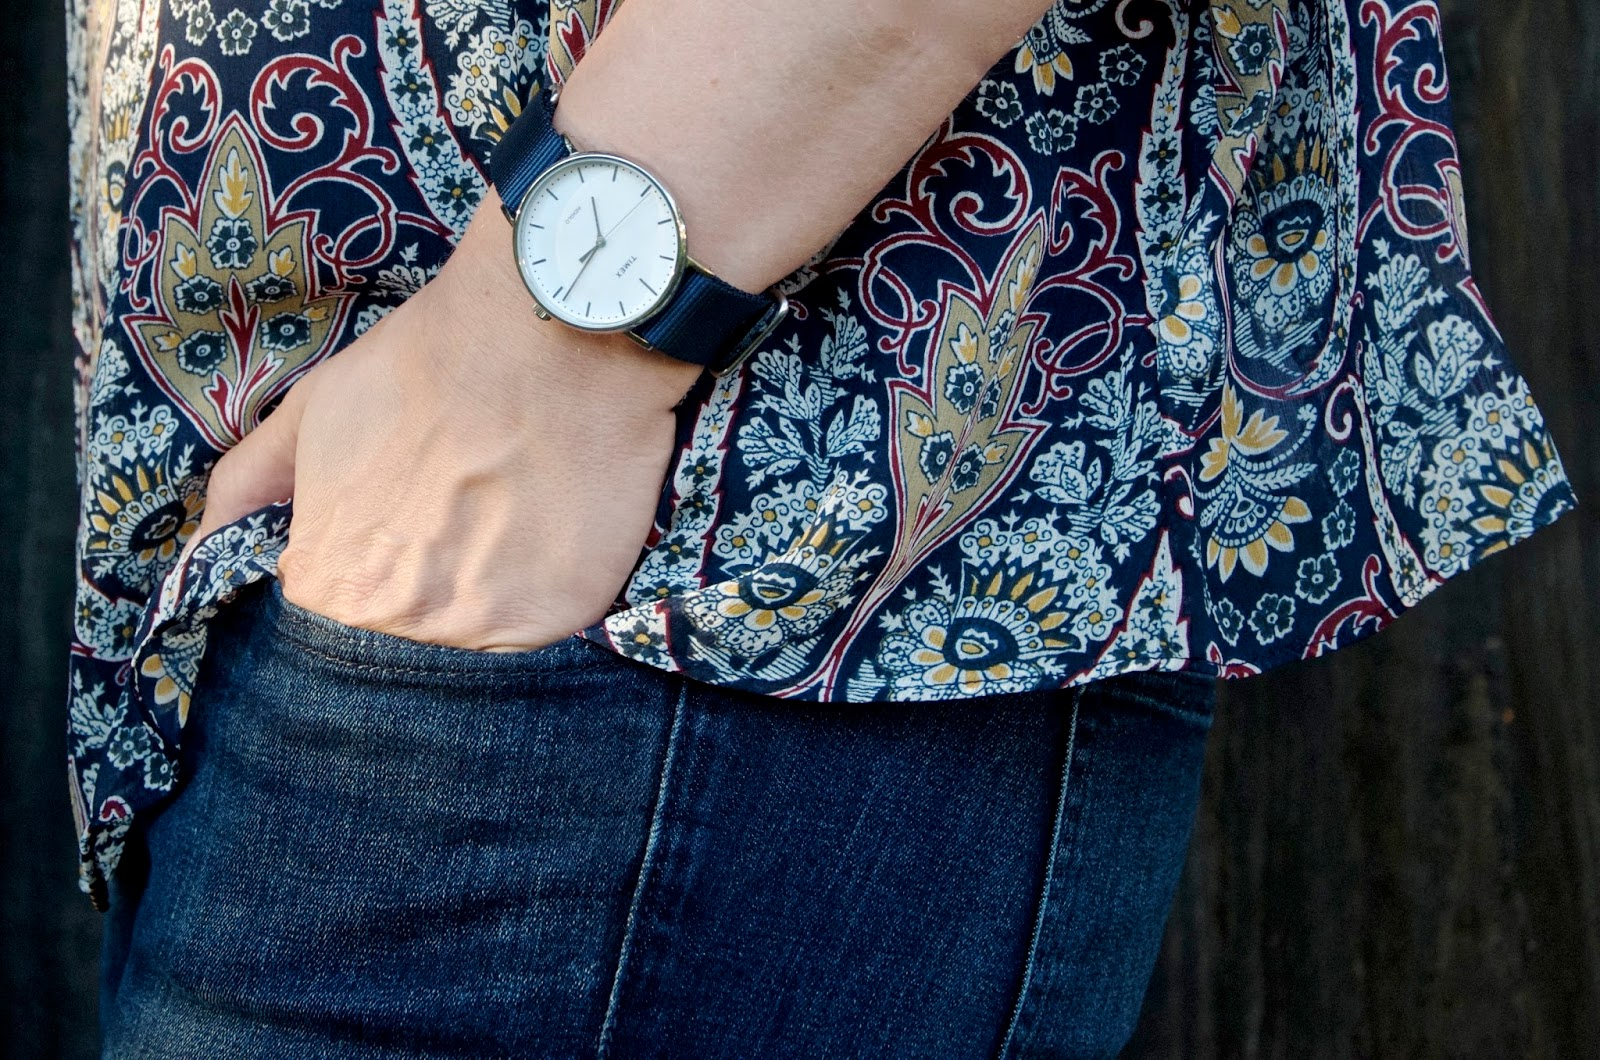 Timex weekender fairfield watch in navy blue with jeans and paisley top